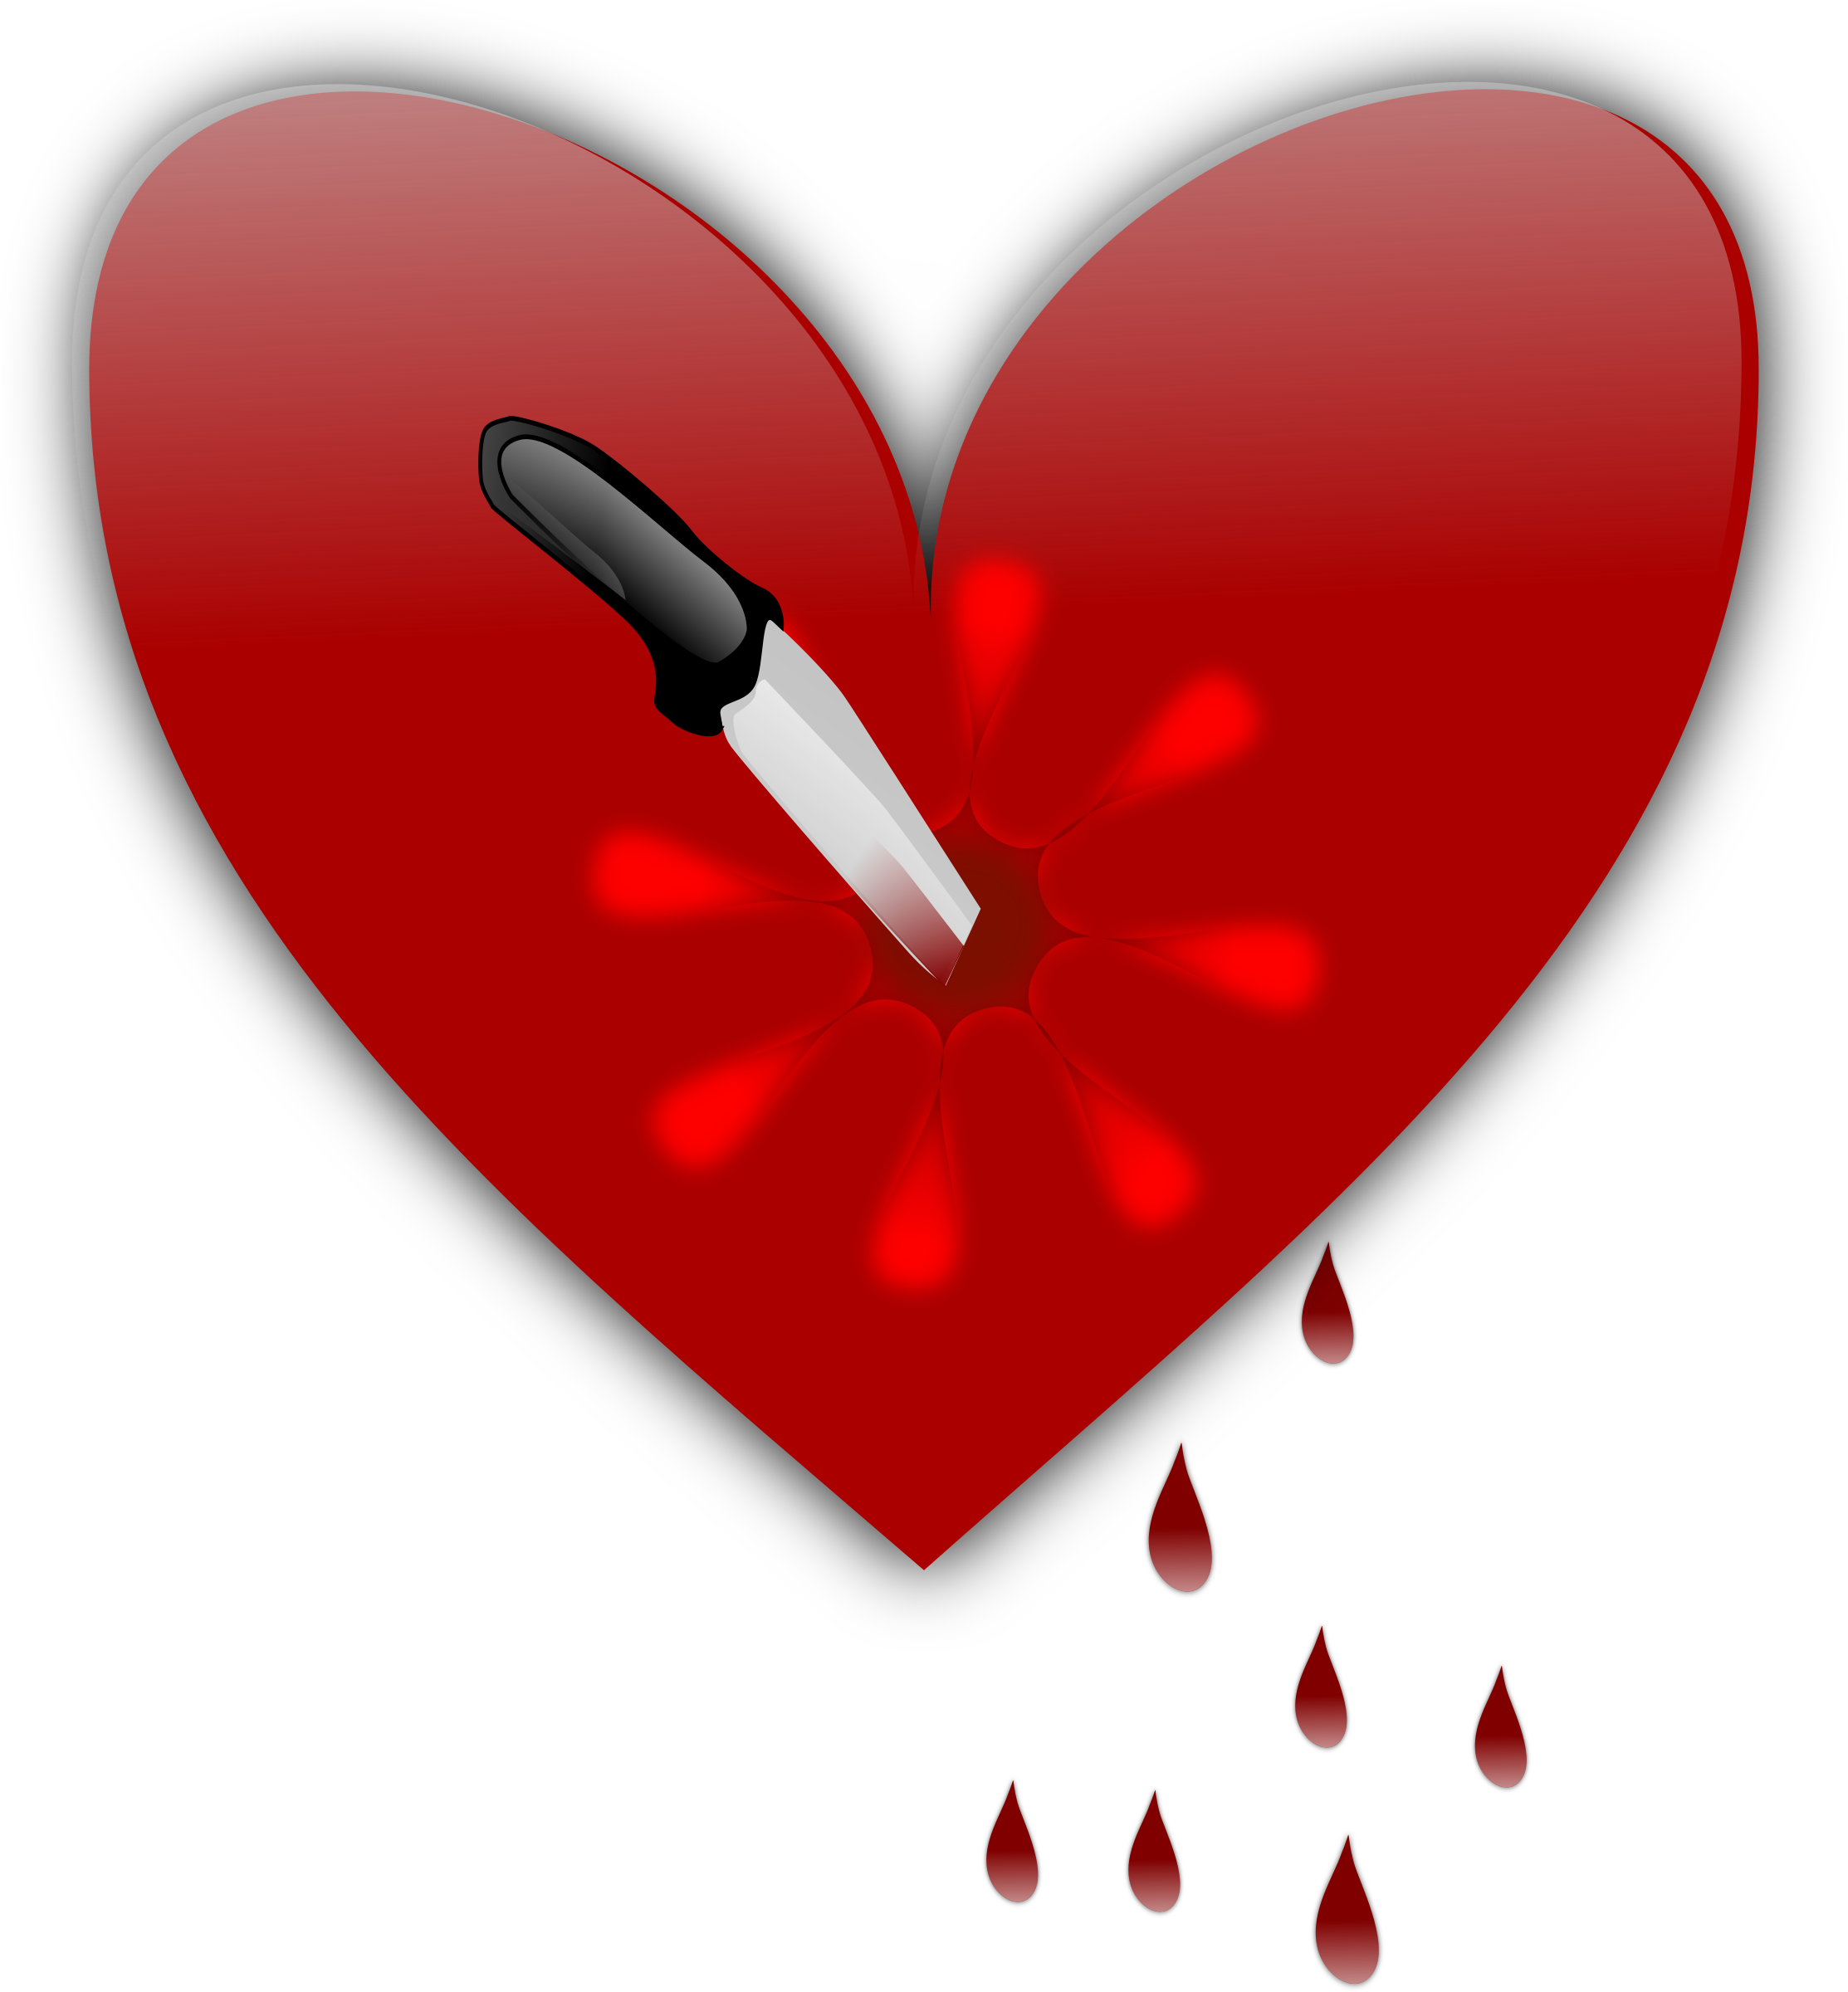 Facebook To Capitalize On Your Broken Heart